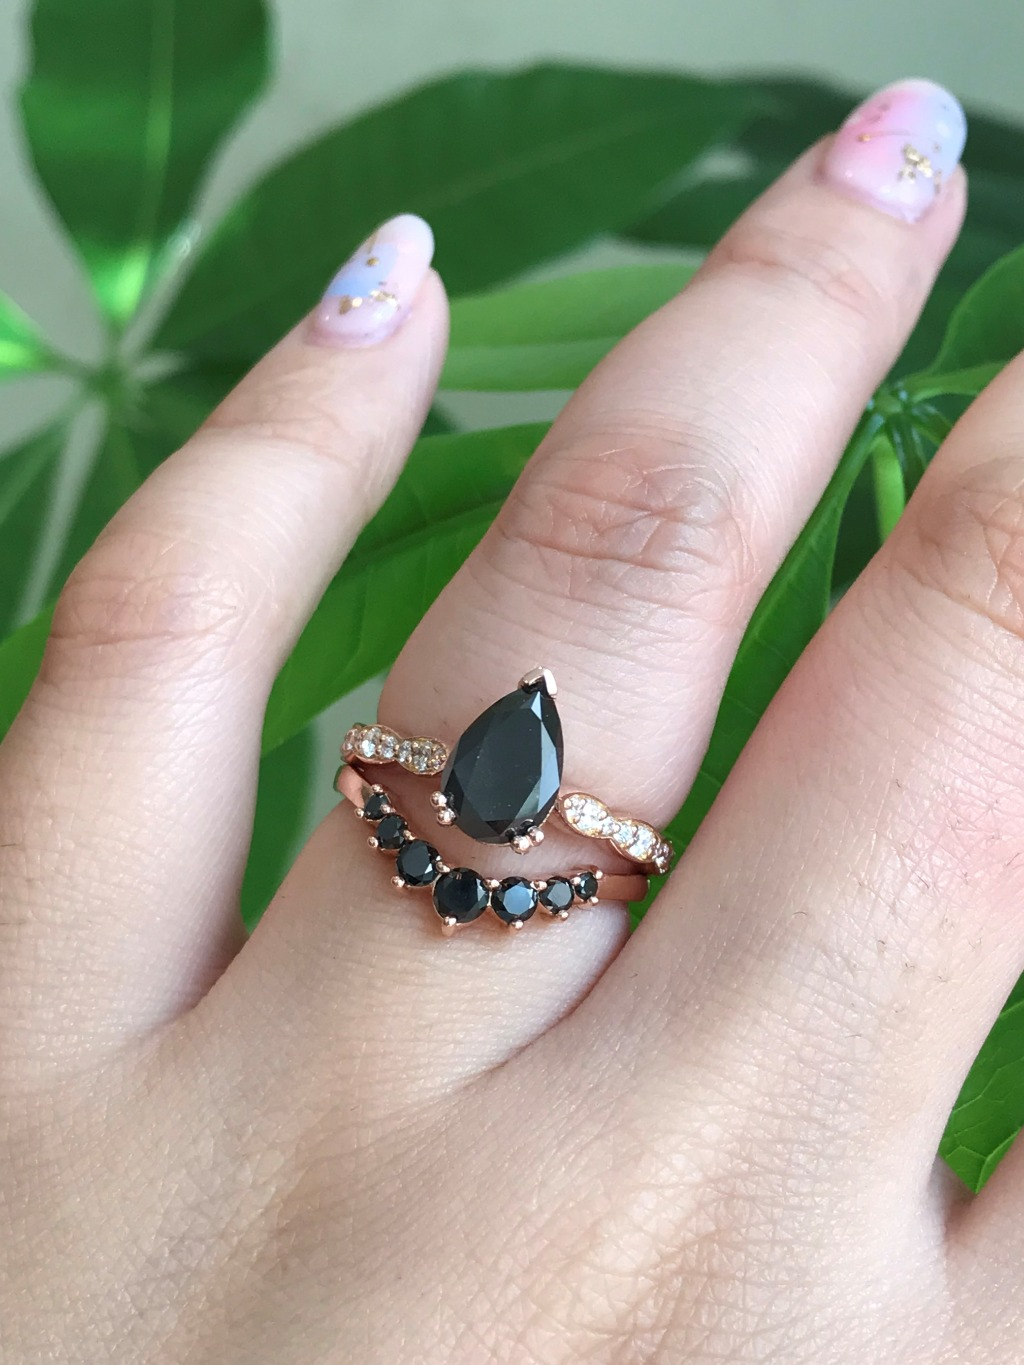 Black Diamond pairs beautifully with any gemstone but it pairs gorgeously with a black diamond, don't you agree? Here is our Pear Cut